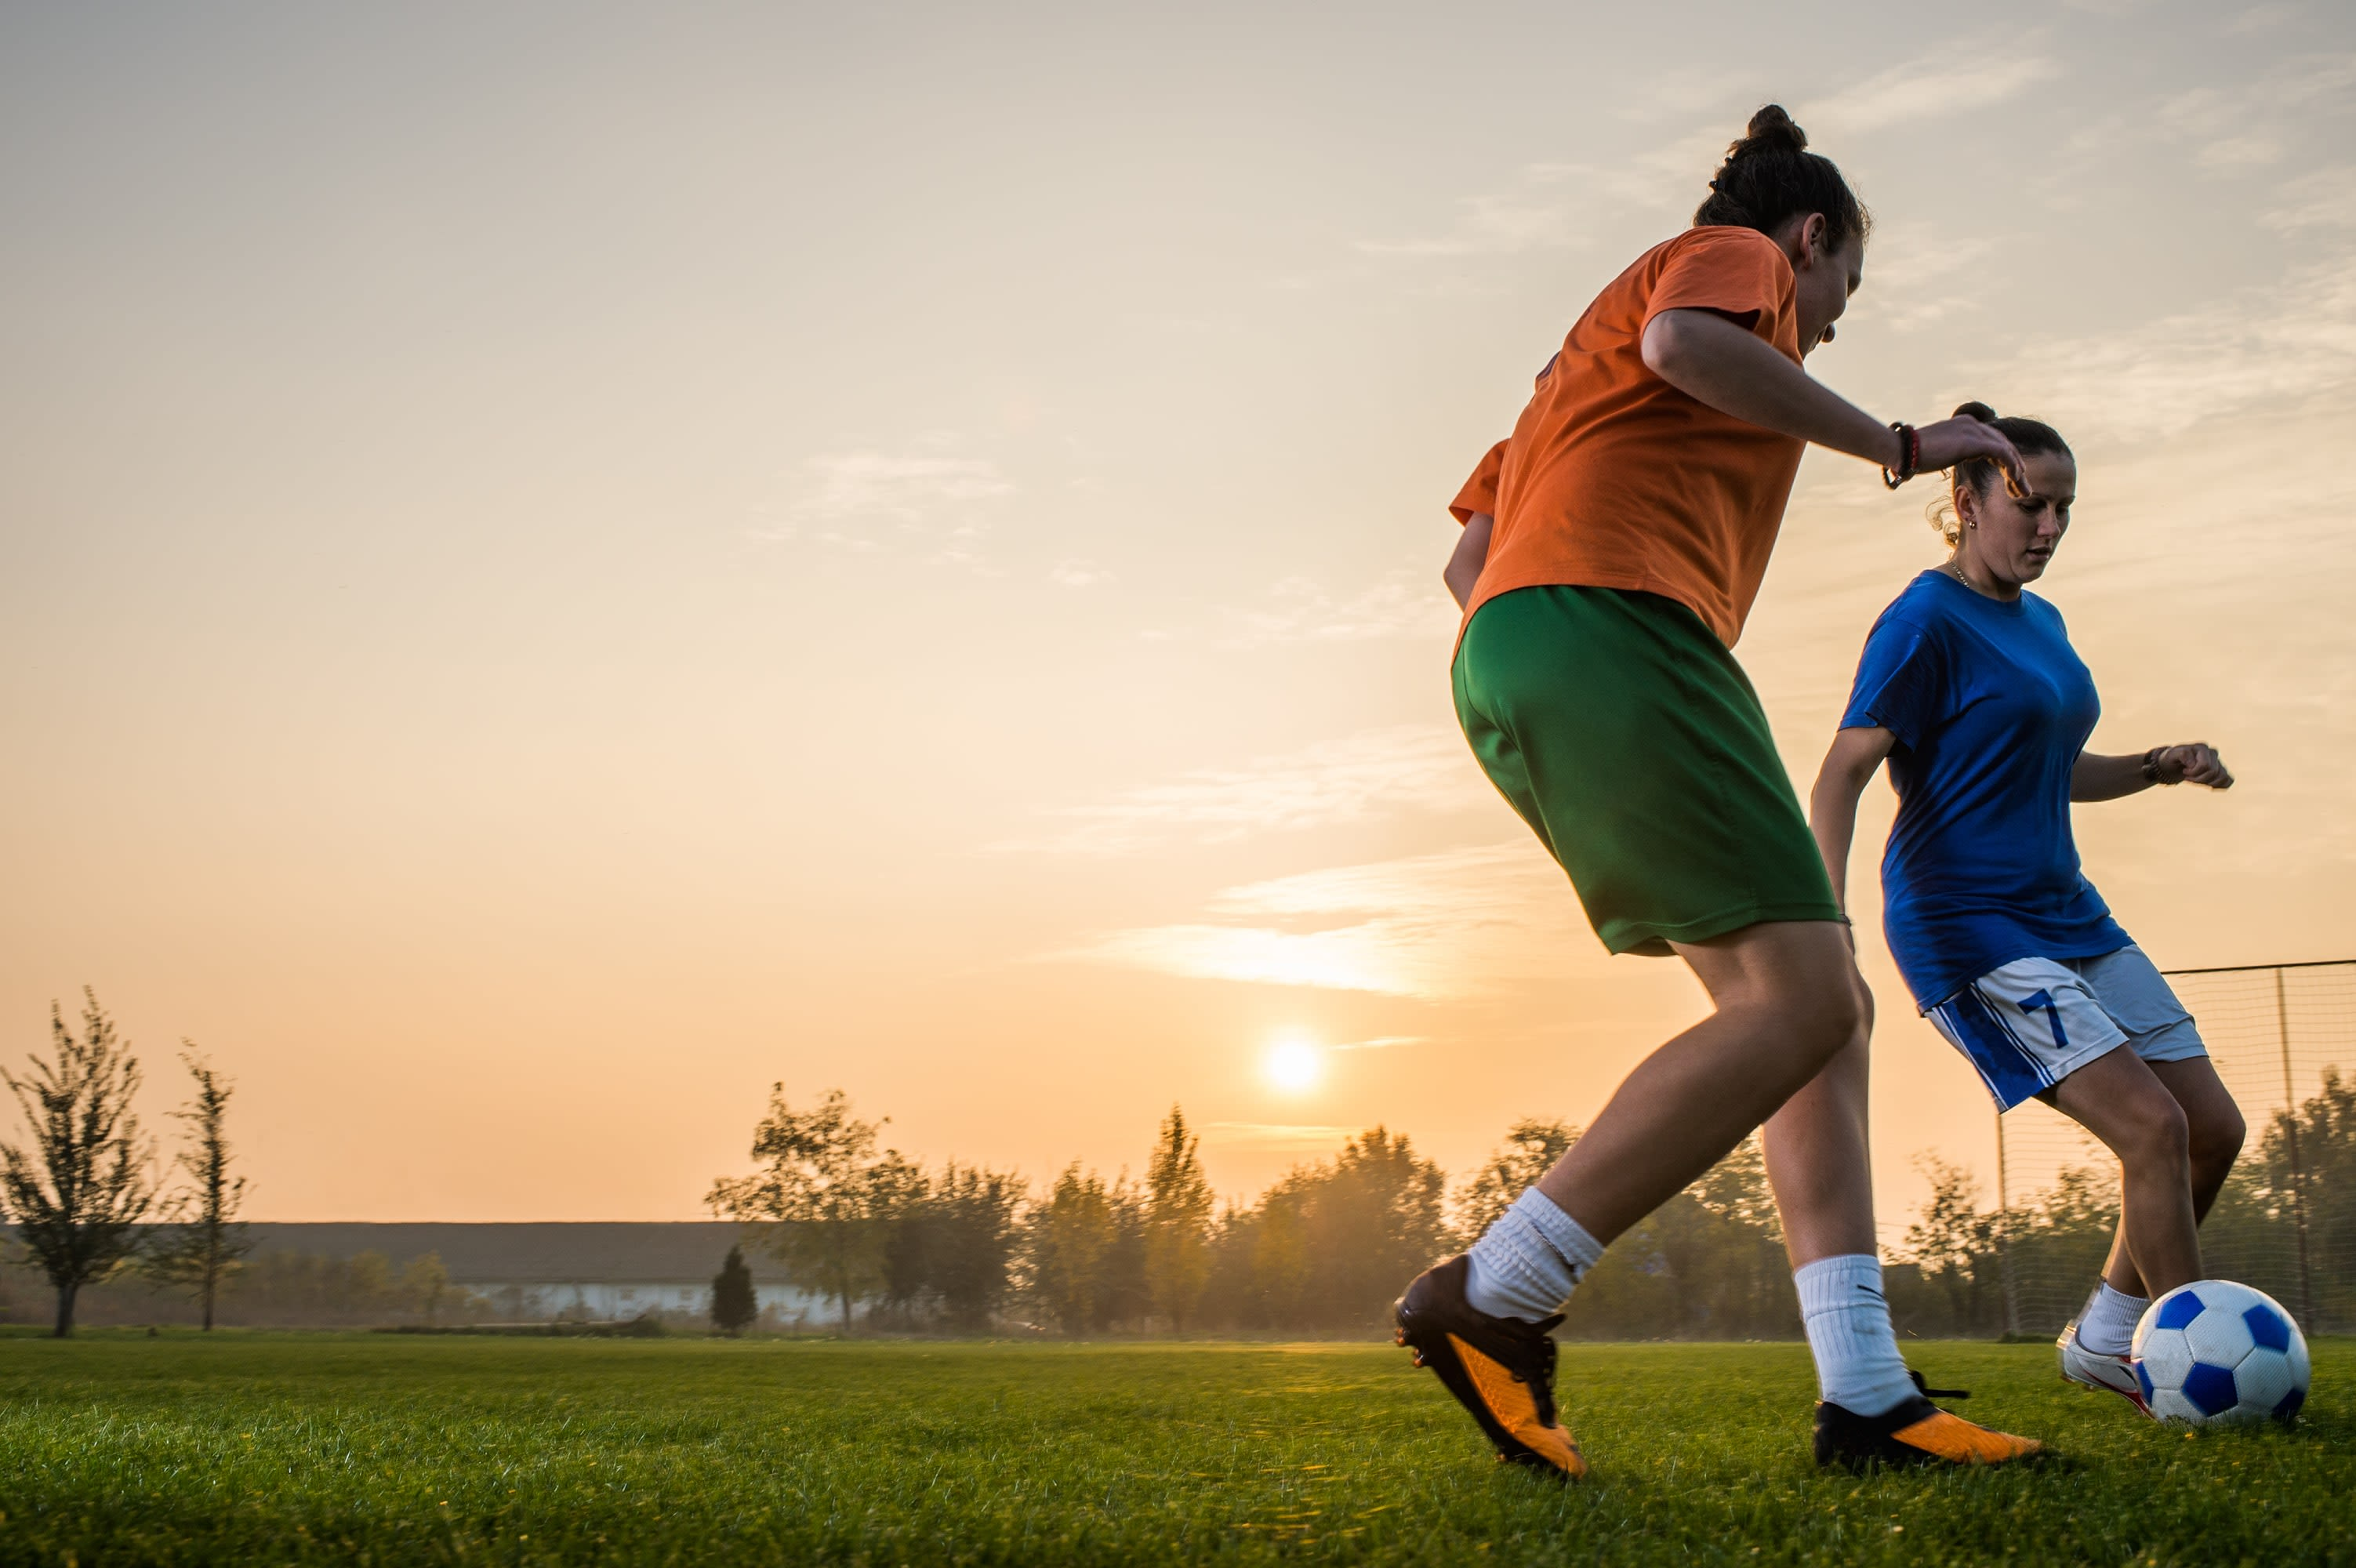 Two women playing football in the sunset